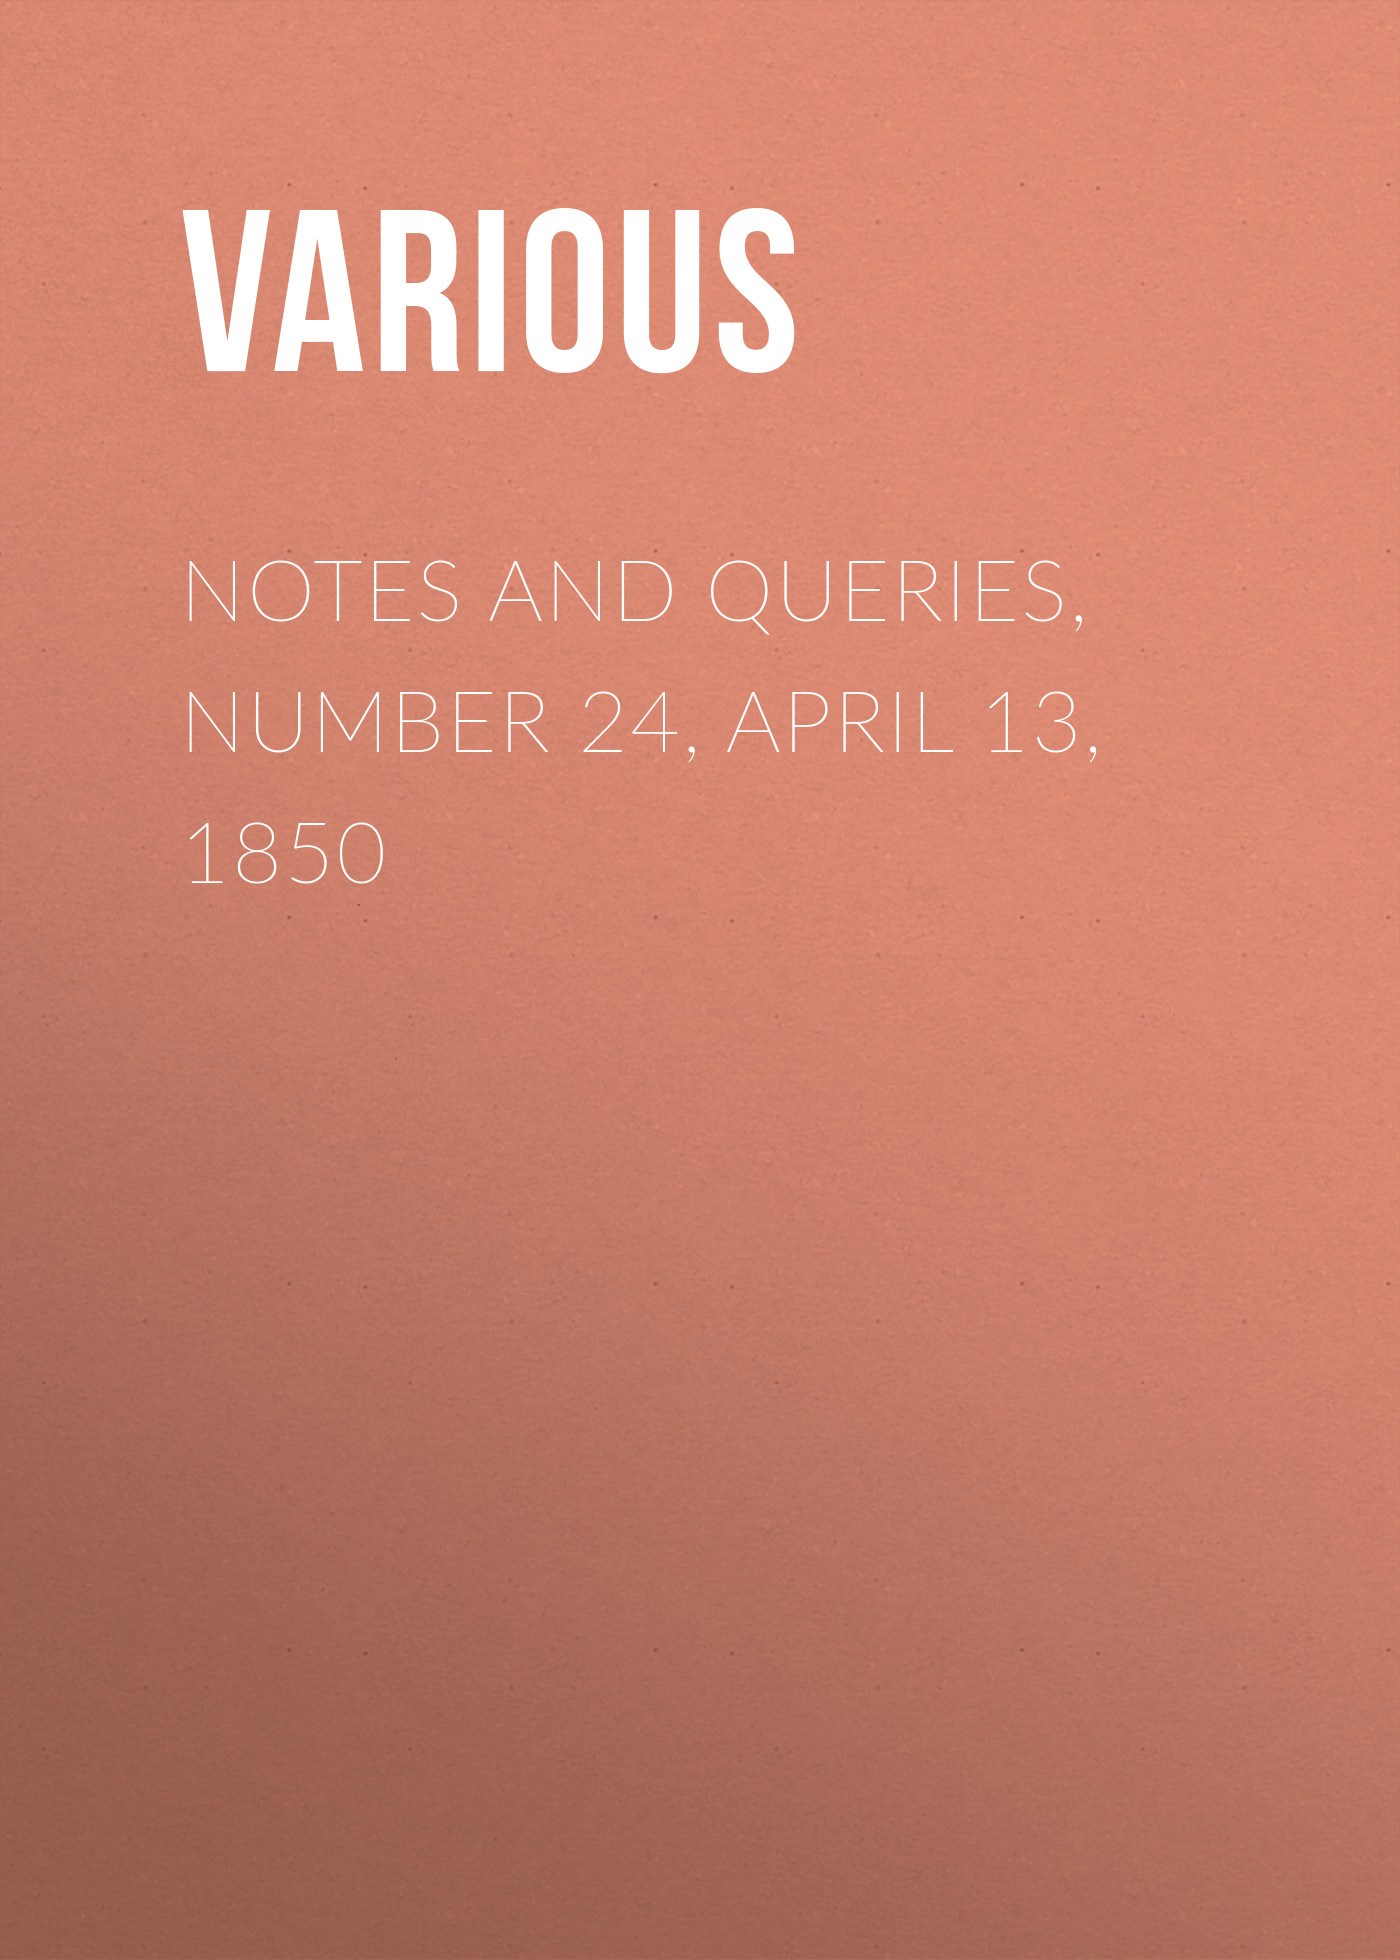 Notes and Queries, Number 24, April 13, 1850 ( Various  )